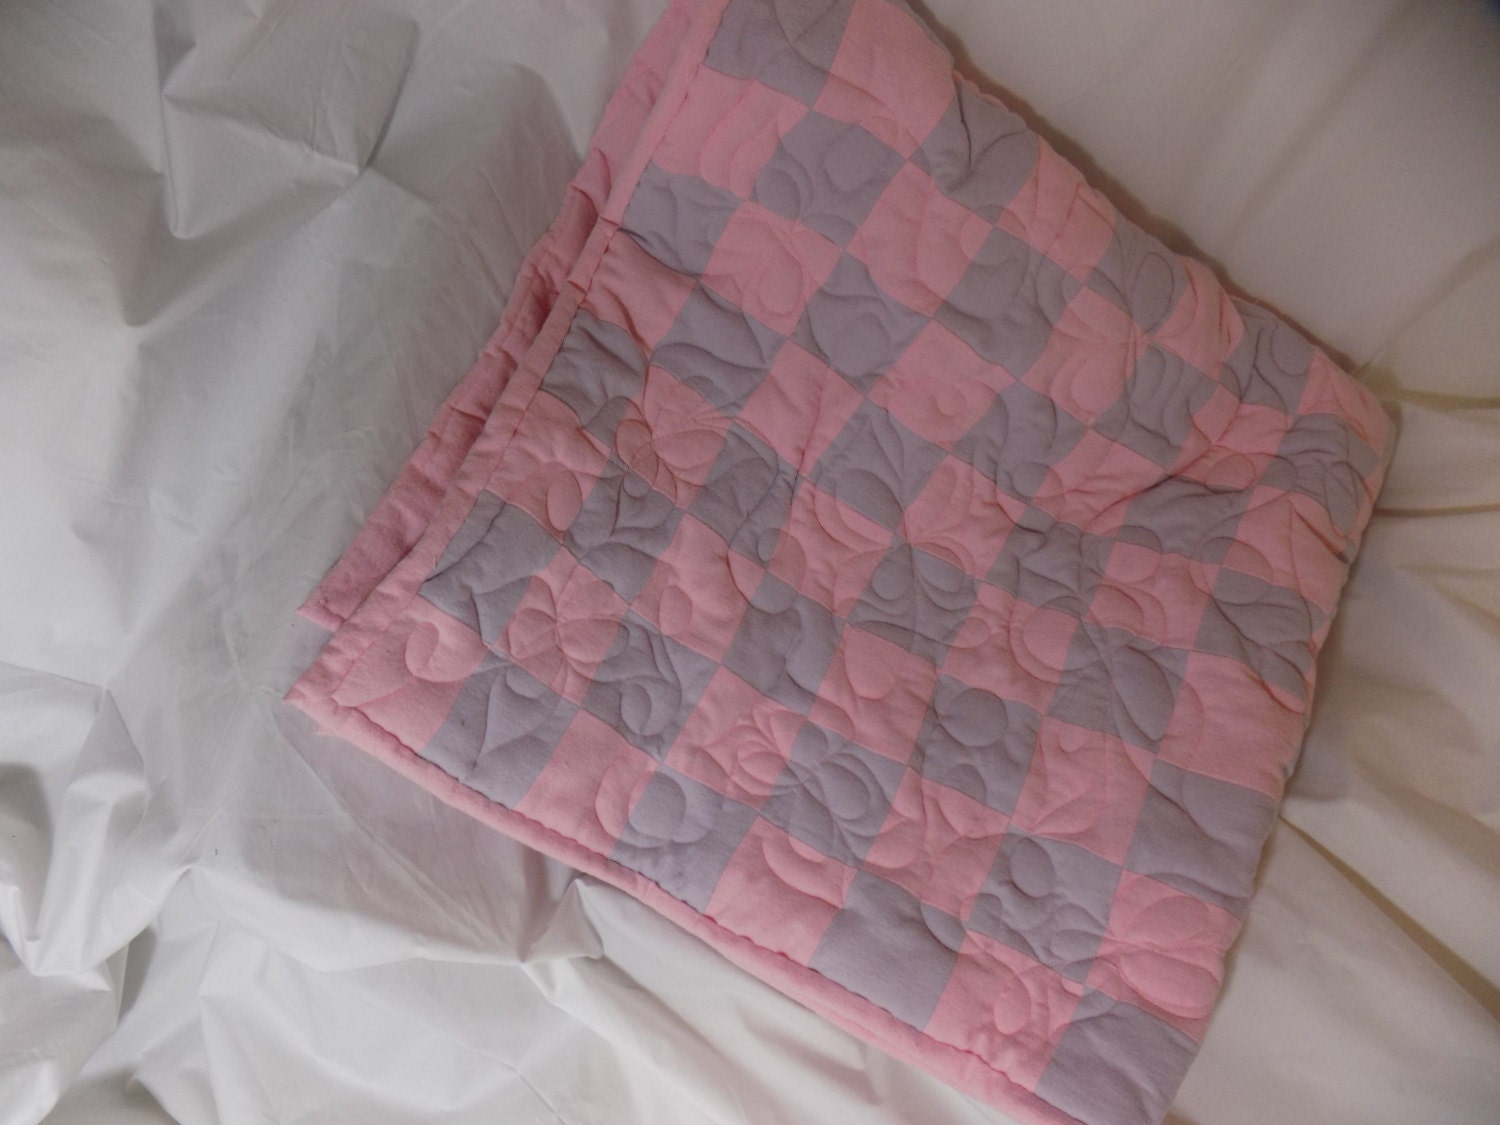 4 39 x 4 39 flannel baby floor quilt light pink and for Floor quilt for babies